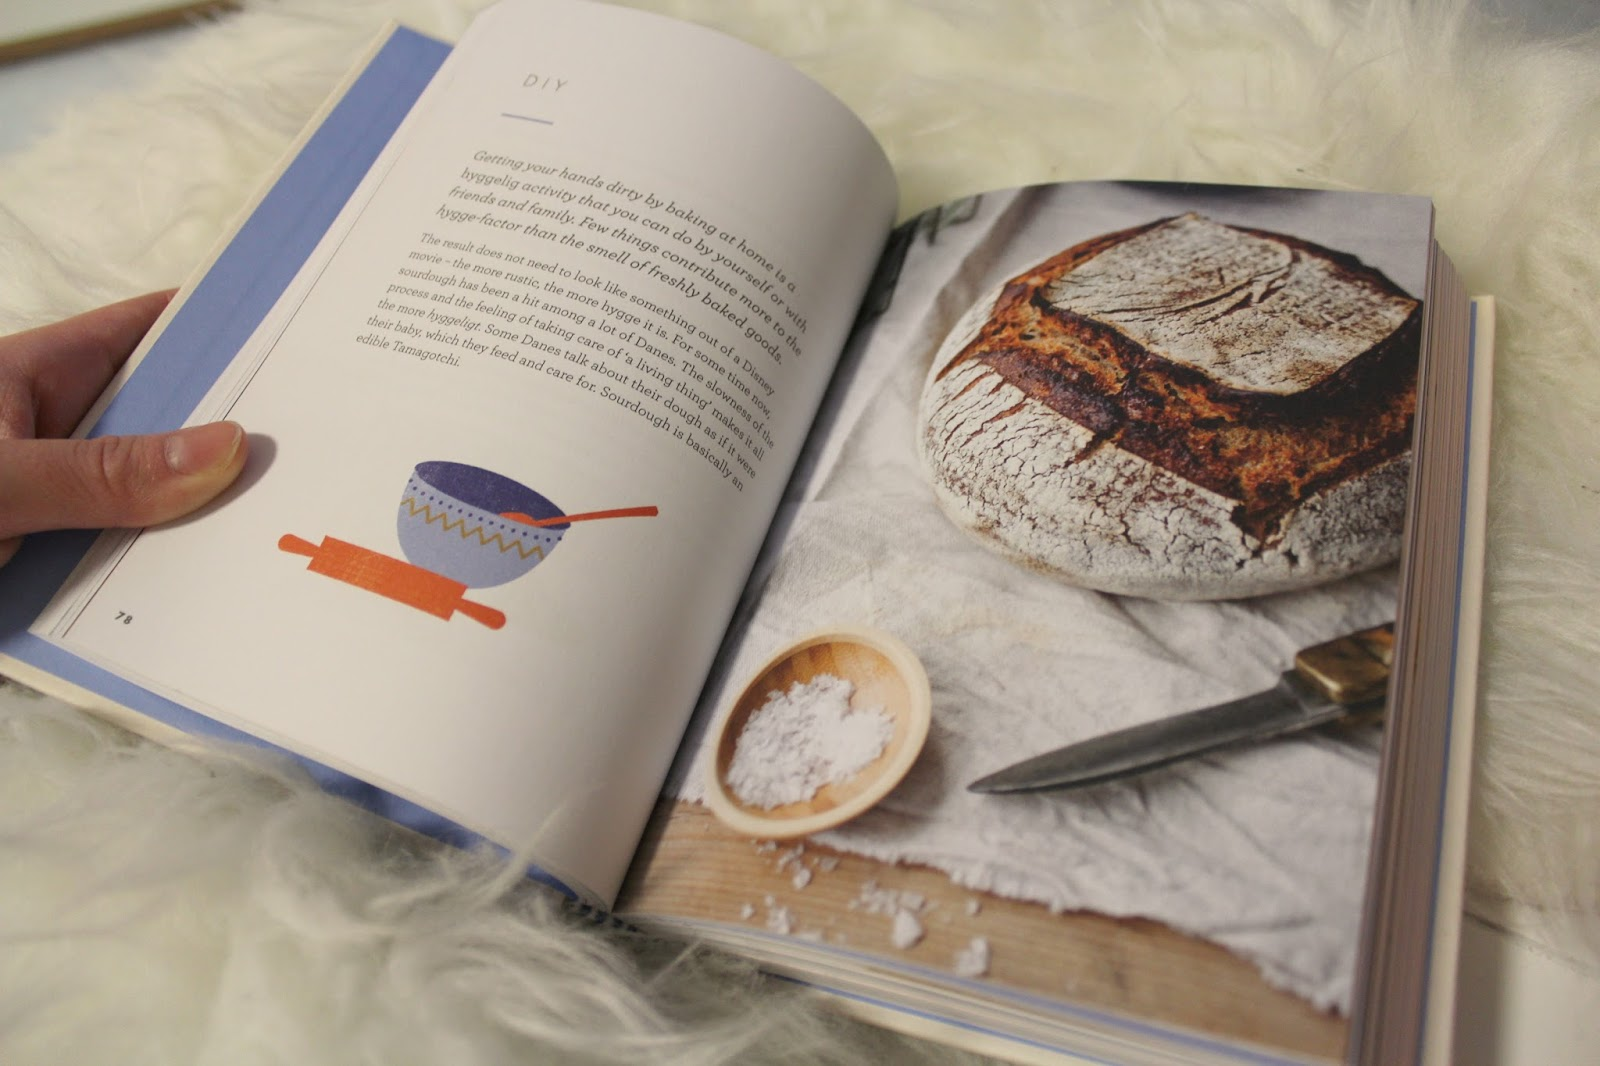 The little book of hygge book review blogmas day 7 jess in have you read the little book of hygge what did you think did it make you want to redecorate your whole flat and build a fireplace solutioingenieria Choice Image